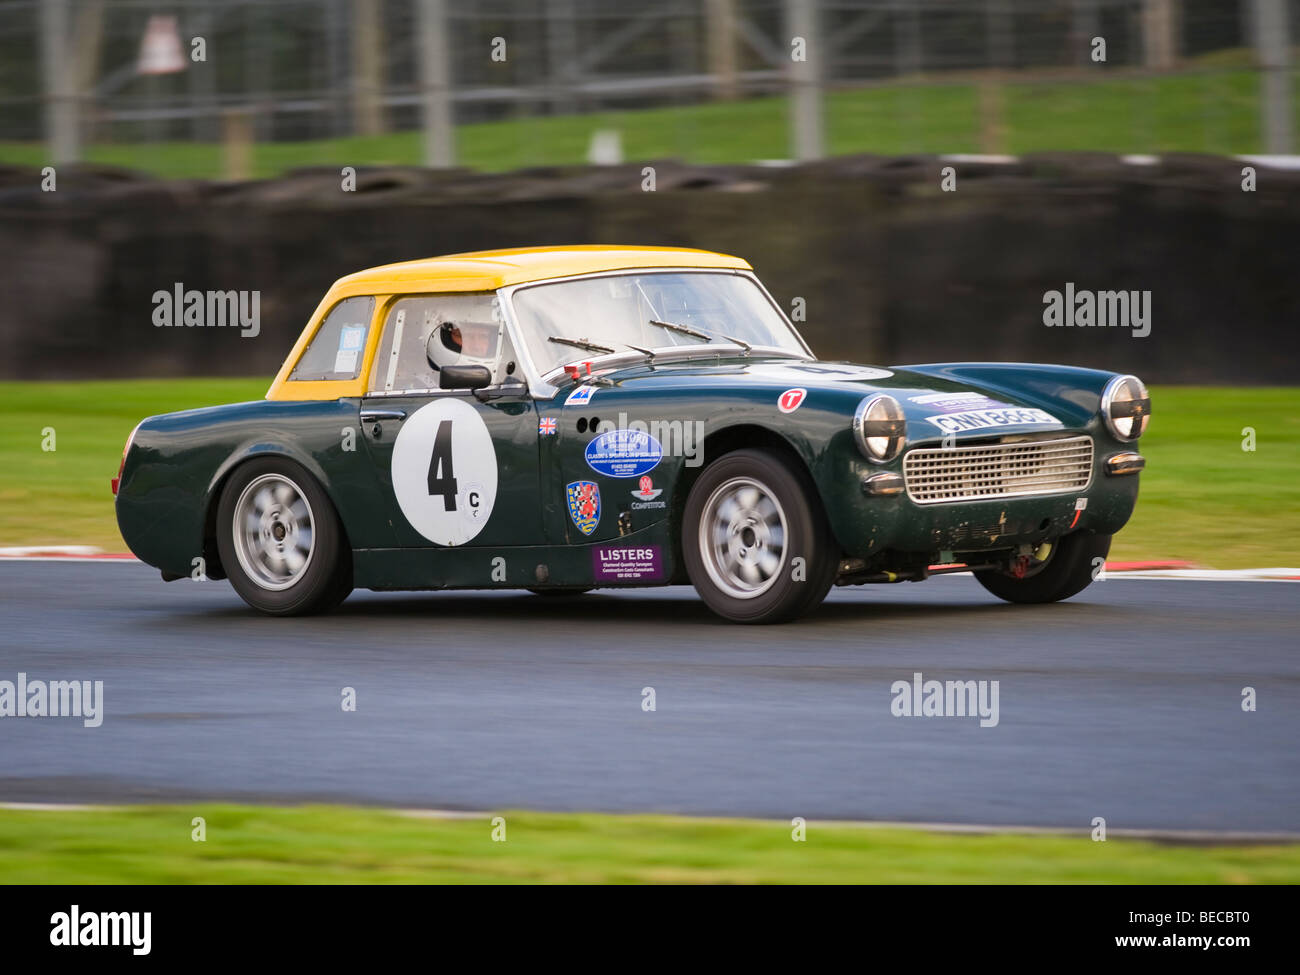 An Austin Healey Sprite Sports Car Racing at Oulton Park Motor ...